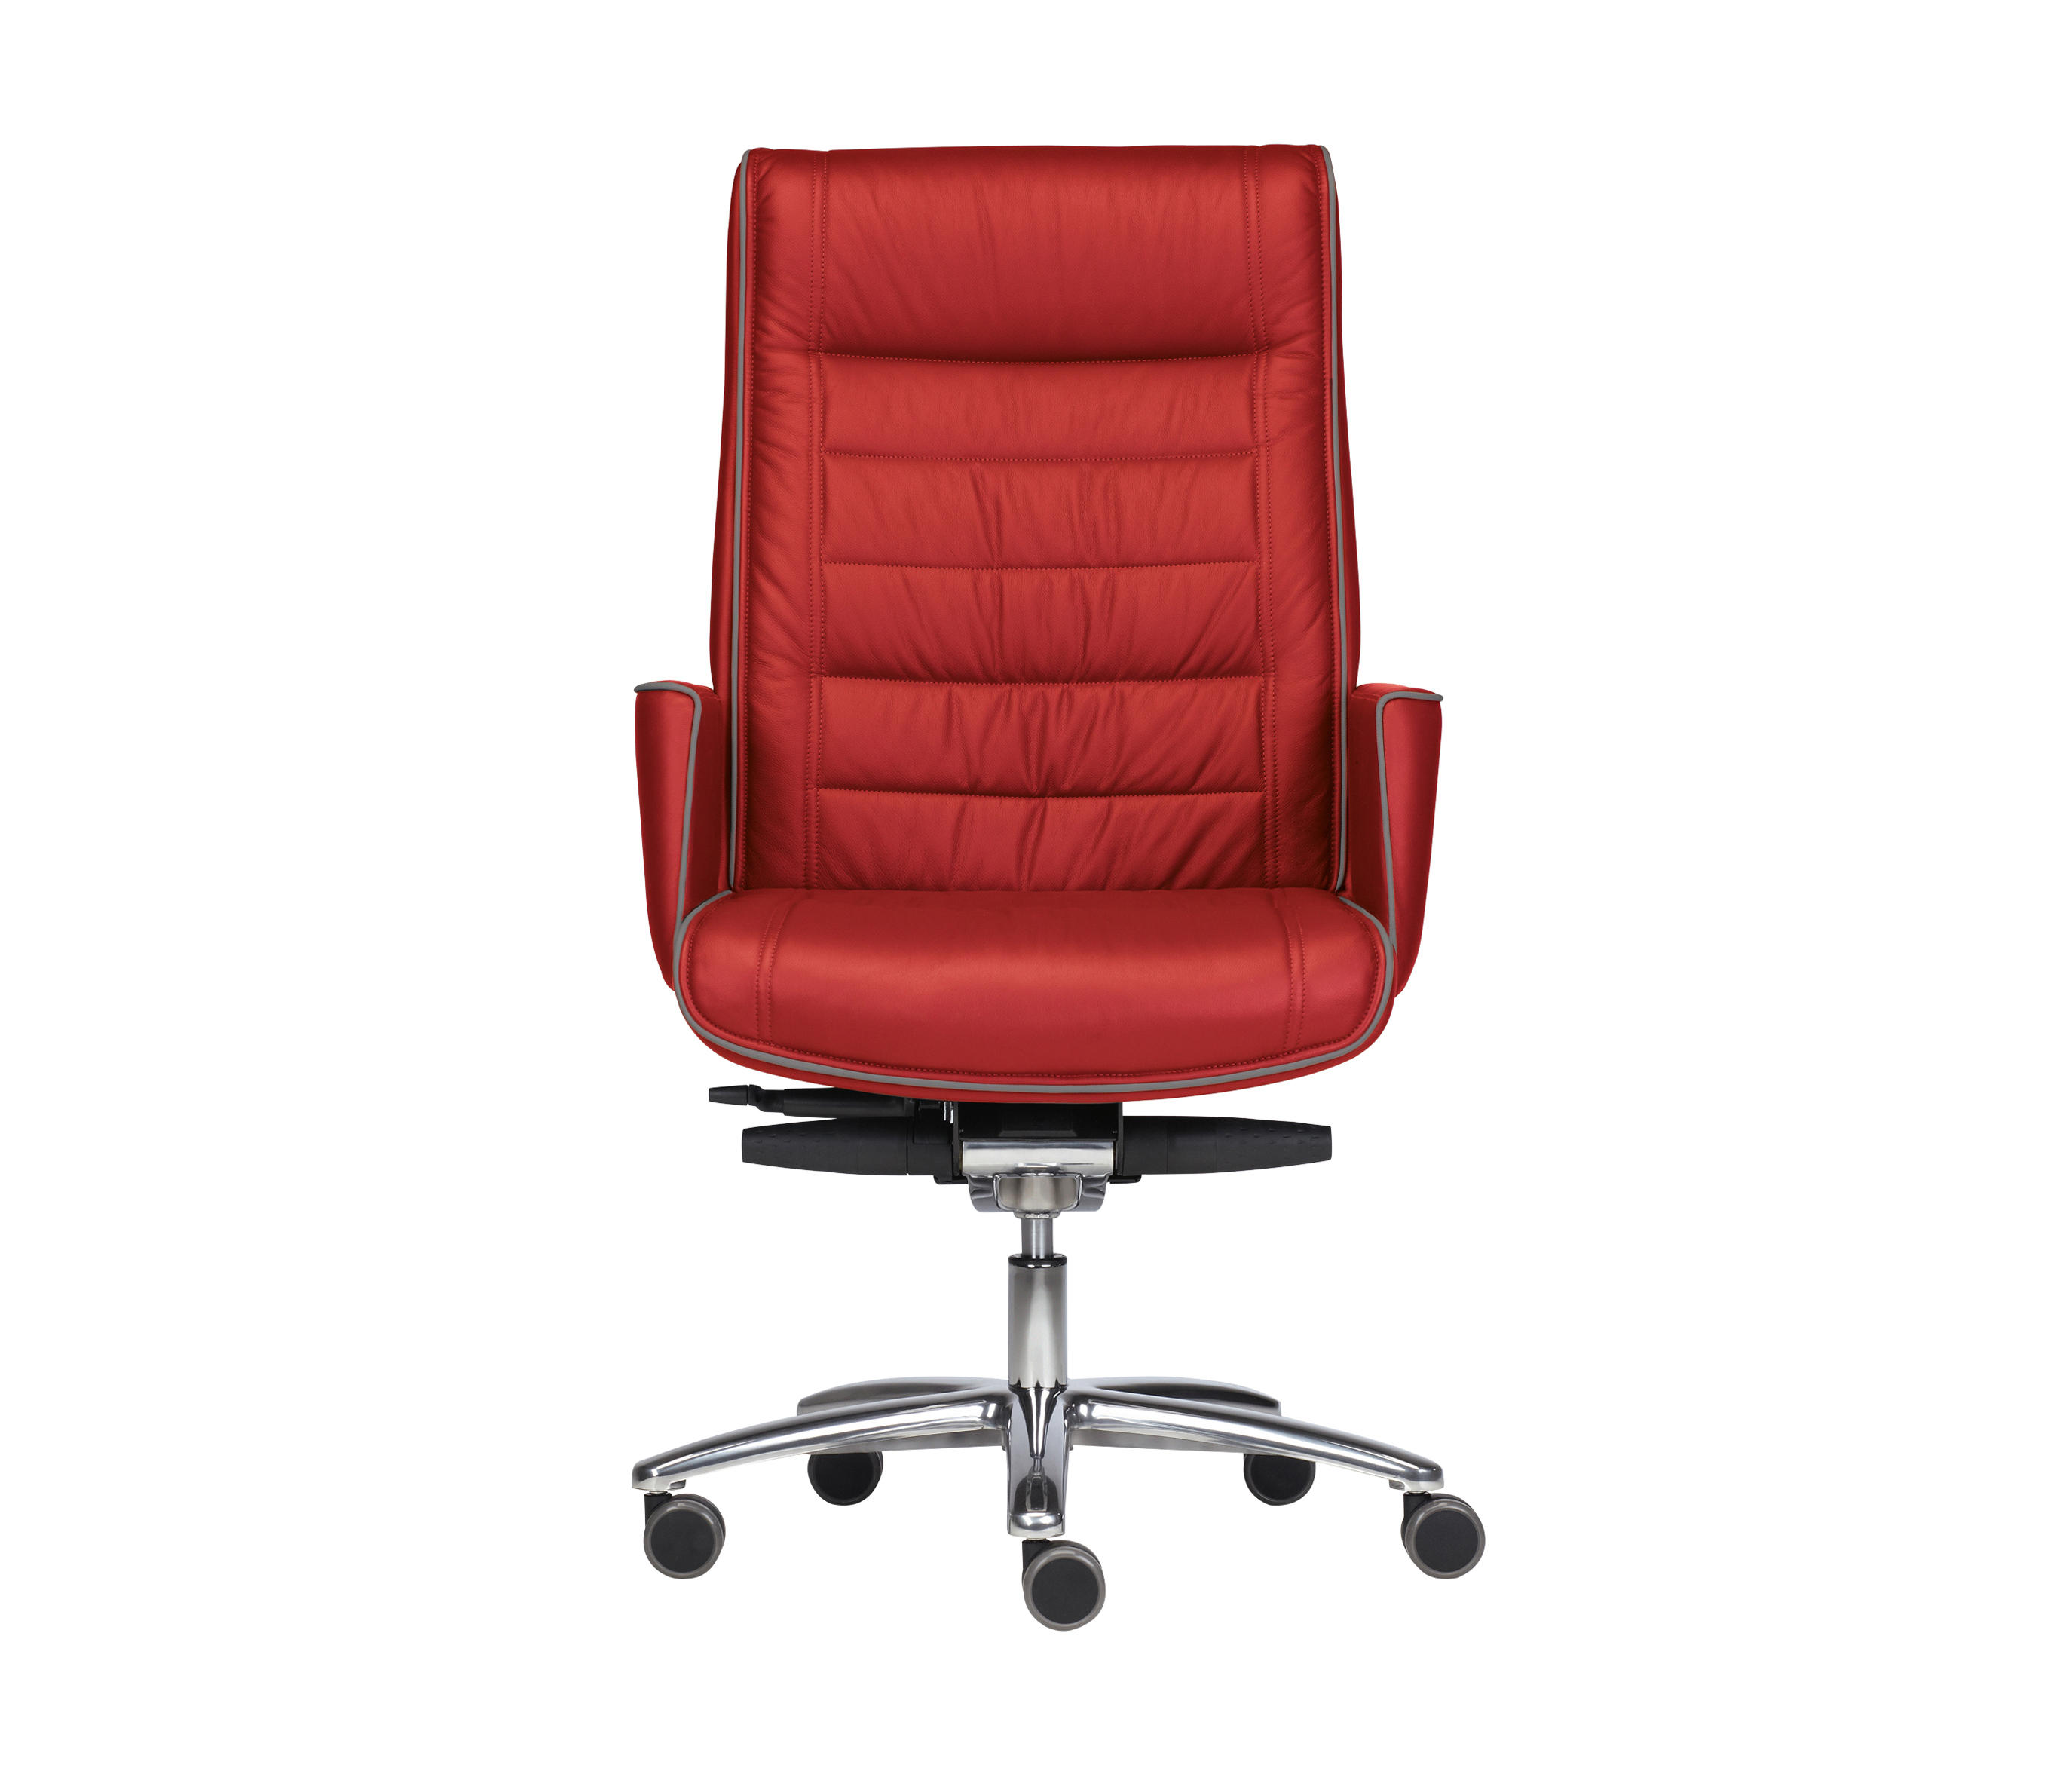 Delicieux Mr. Big 895 By Luxy | Office Chairs ...